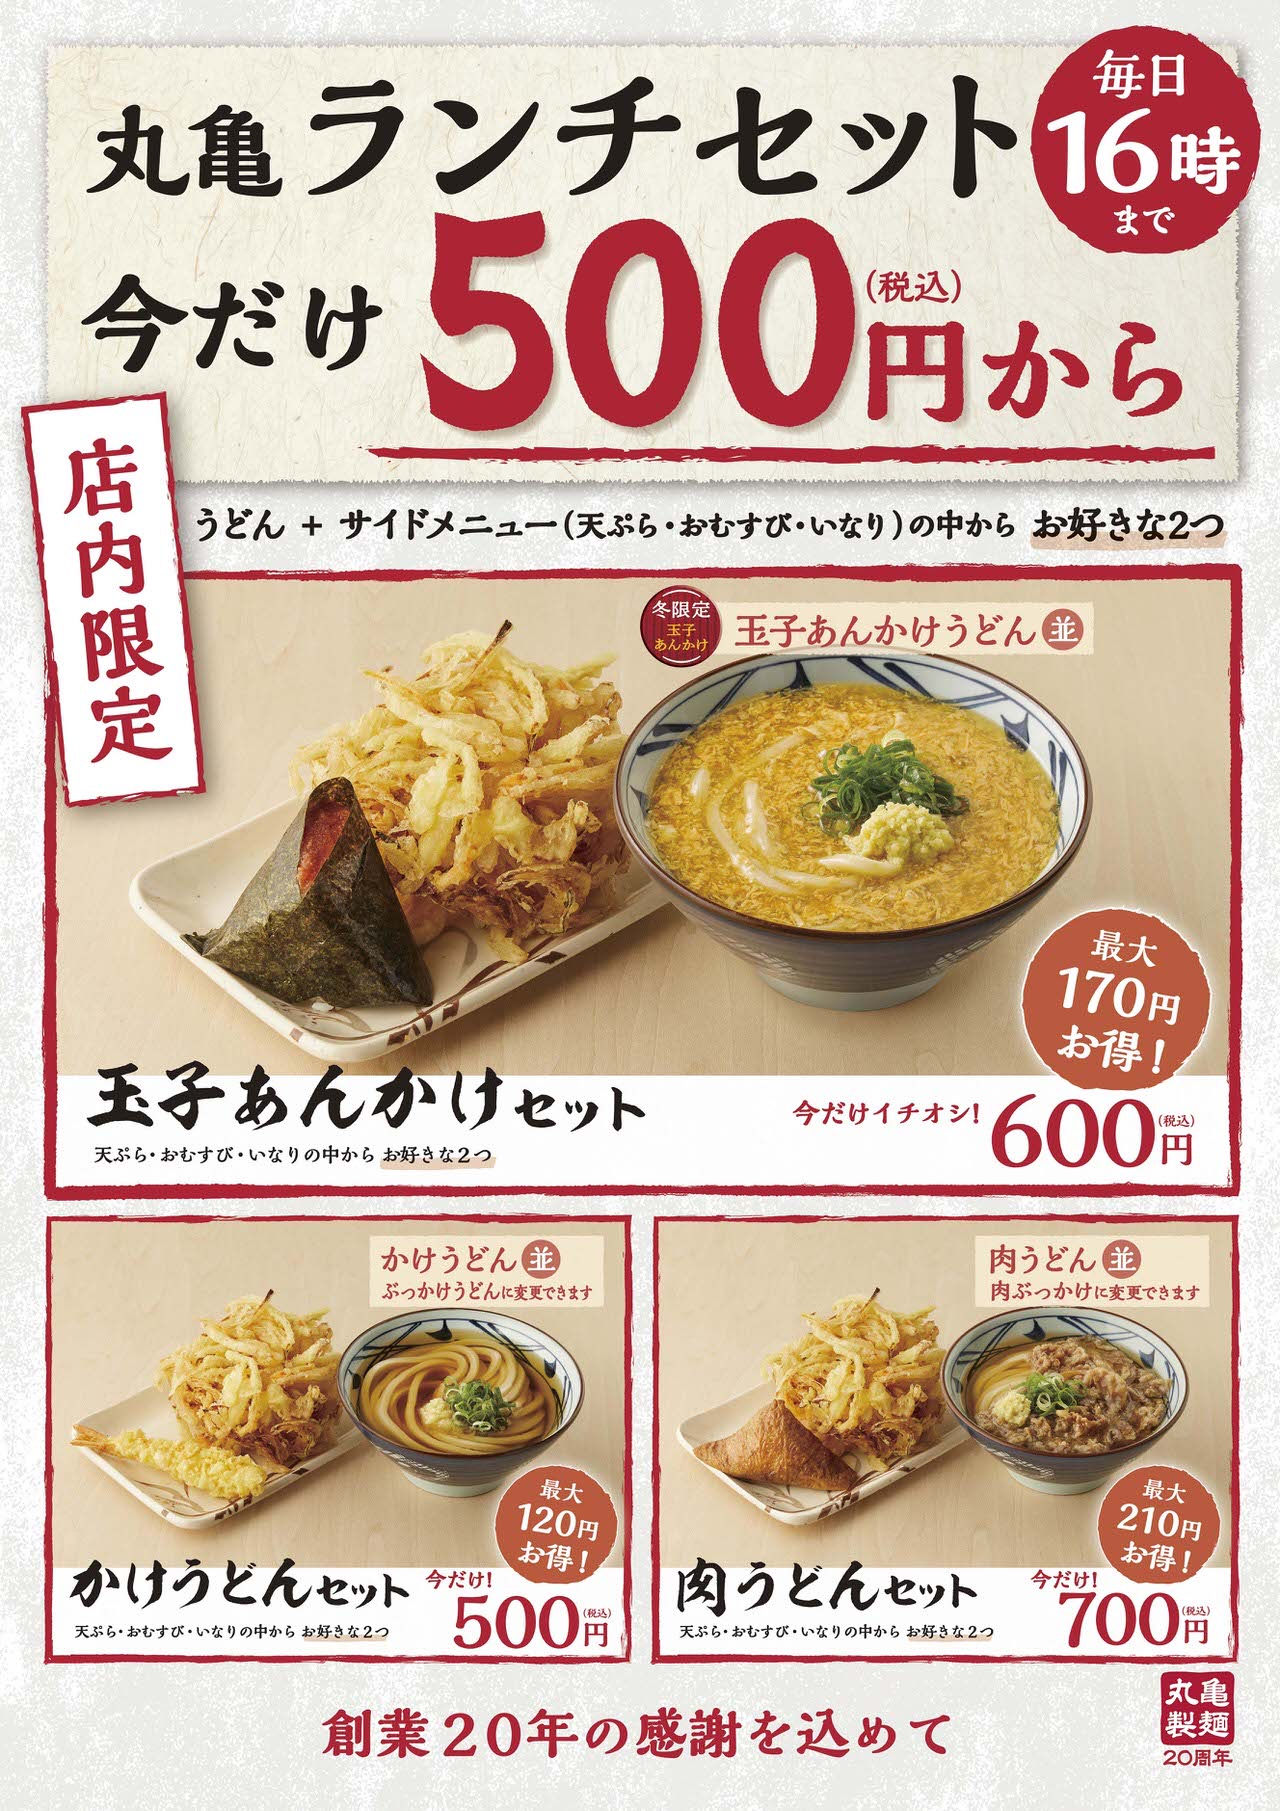 Marugame lunch 202011 1